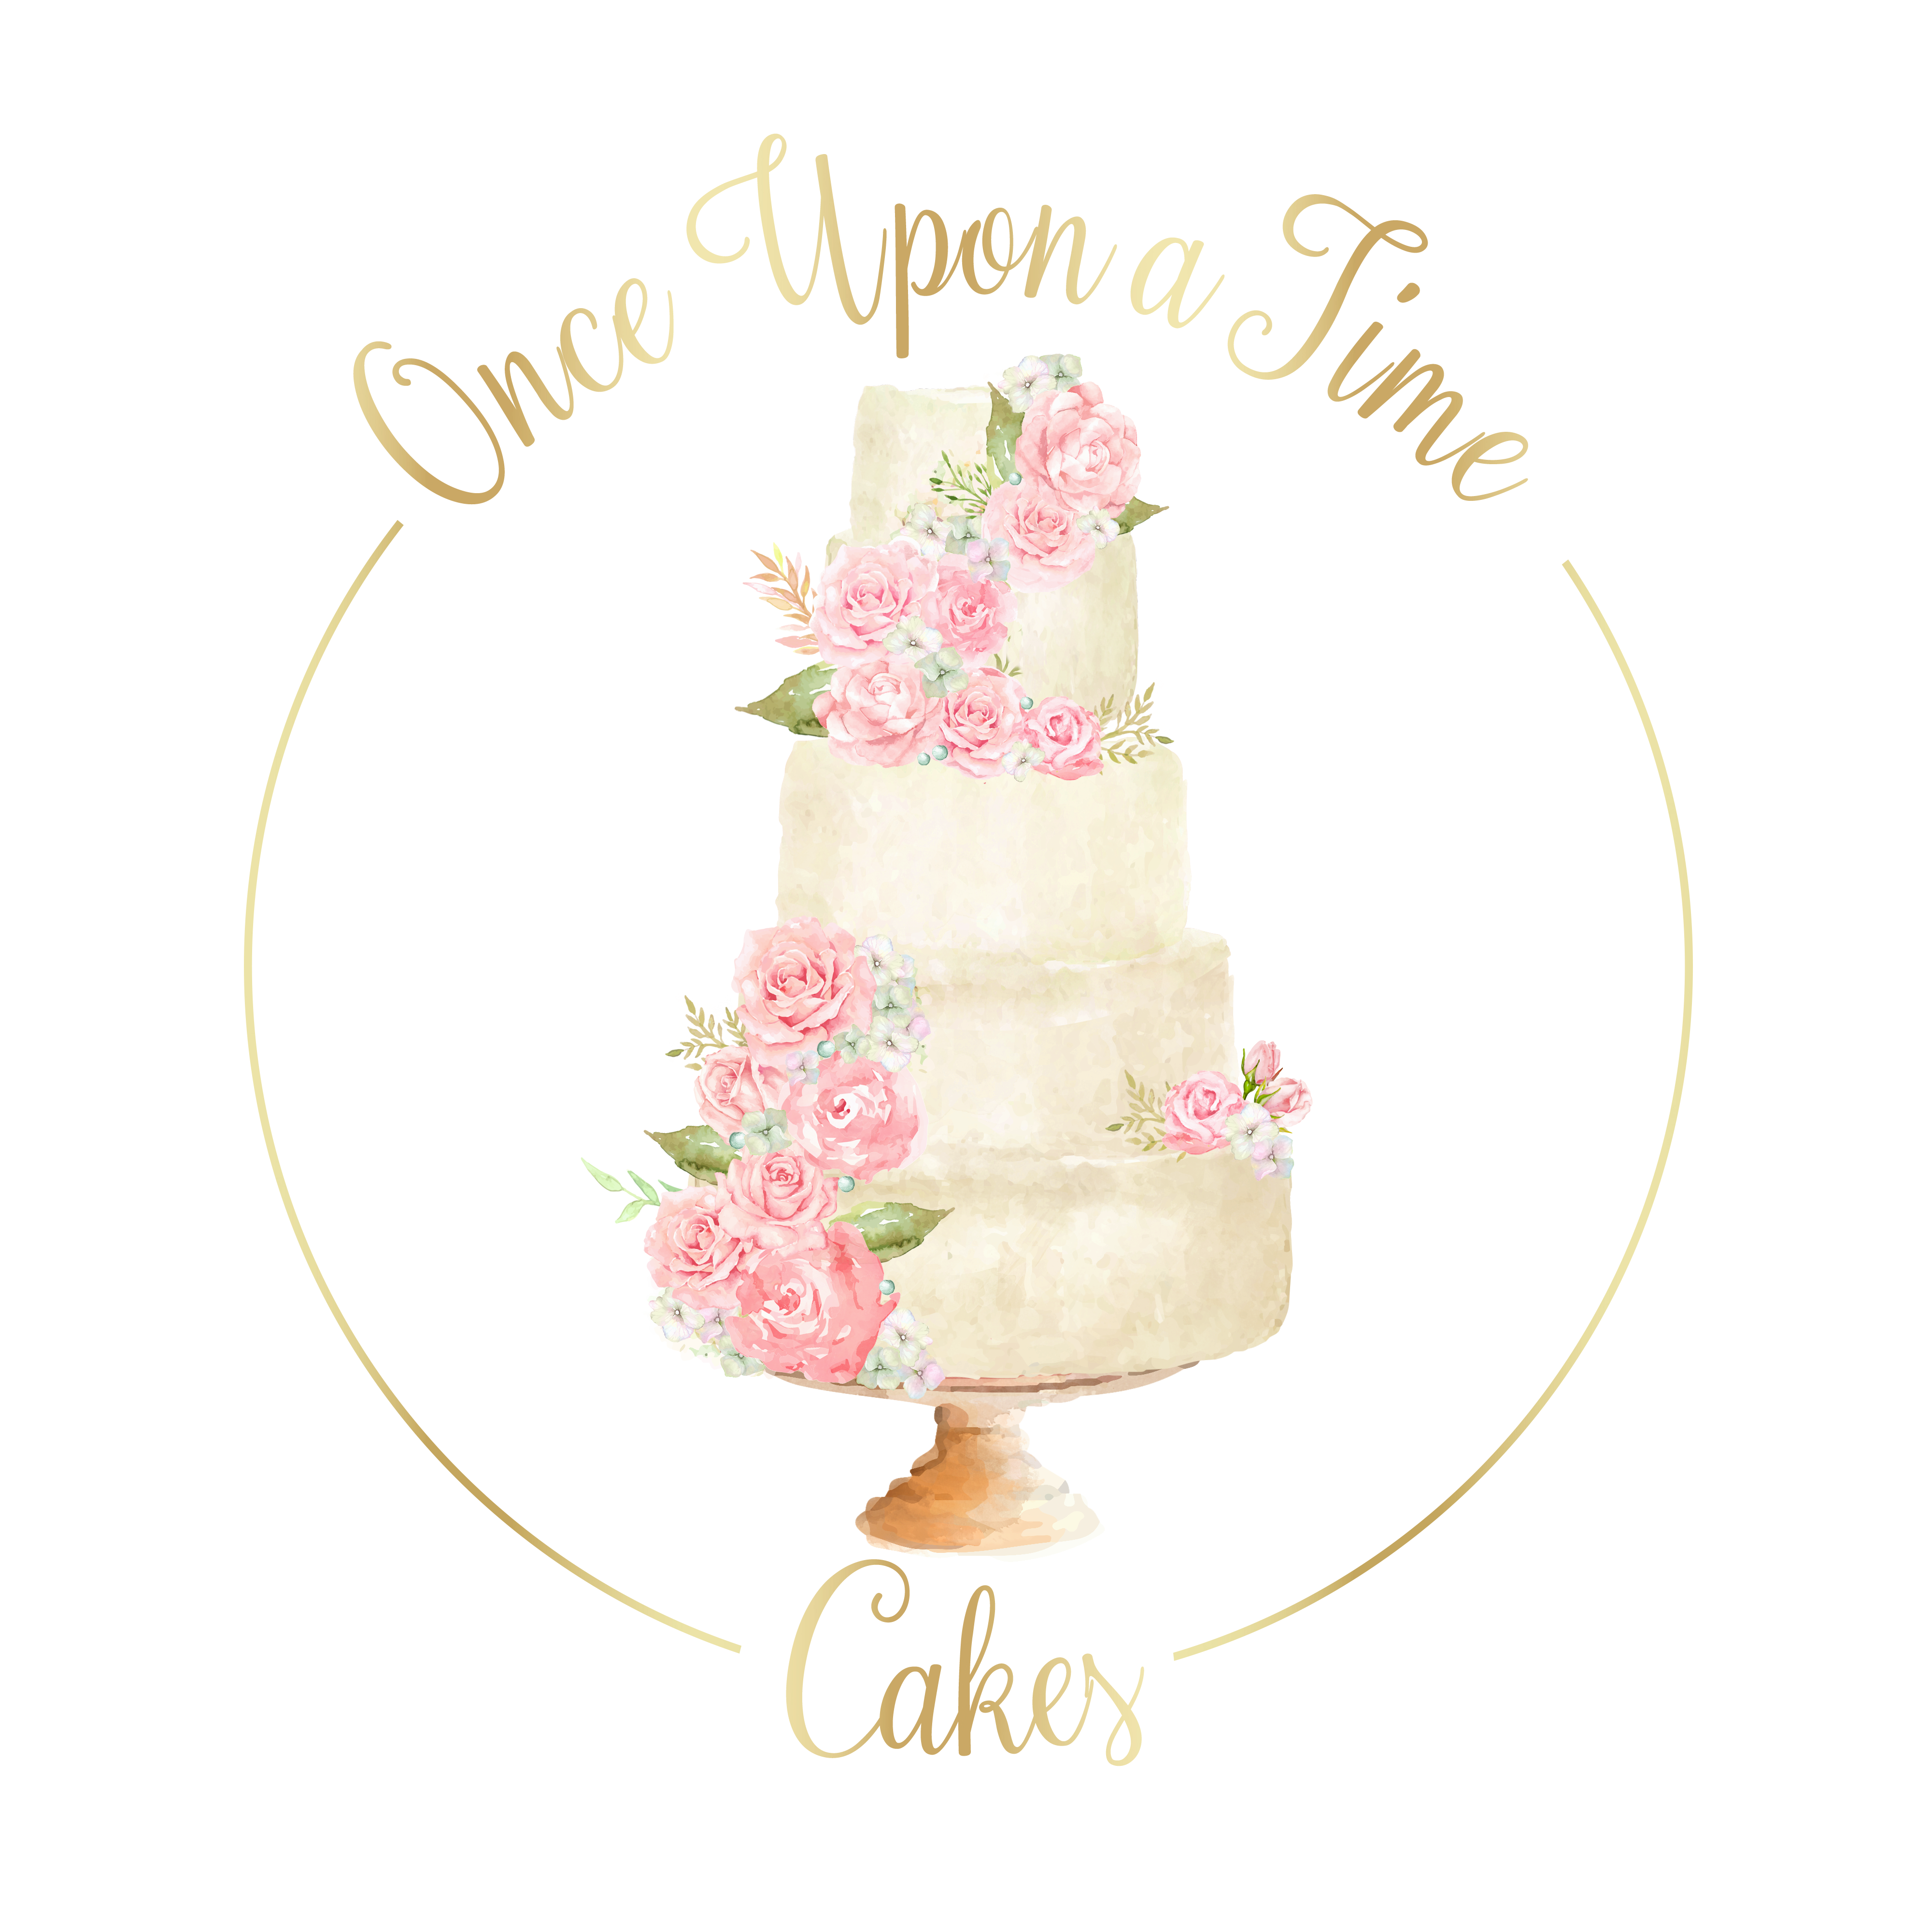 Once upon a time cakes